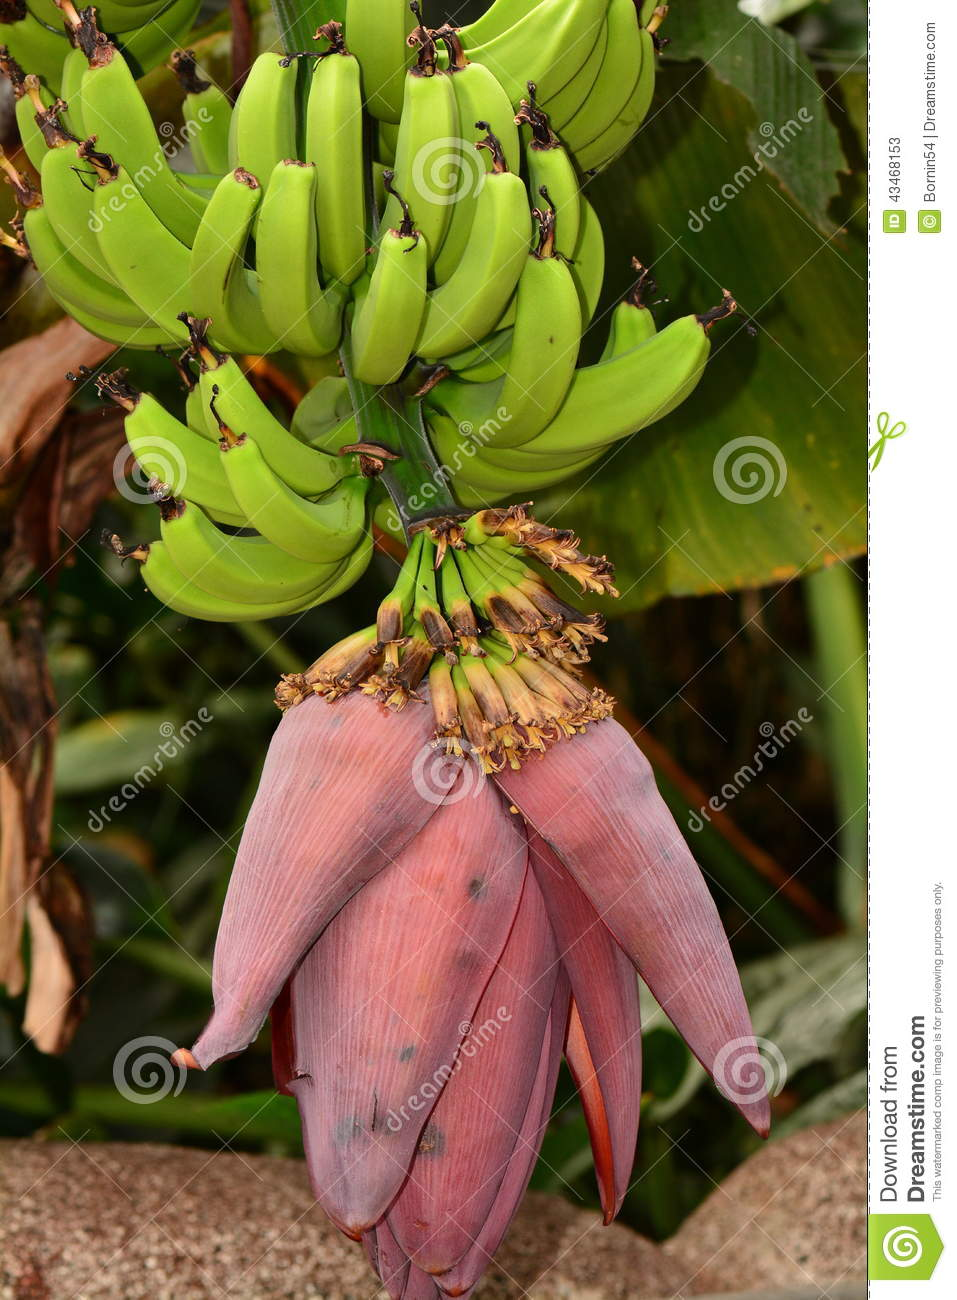 Bananas Hanging From Vine Stock Image Image Of Exported 43468153